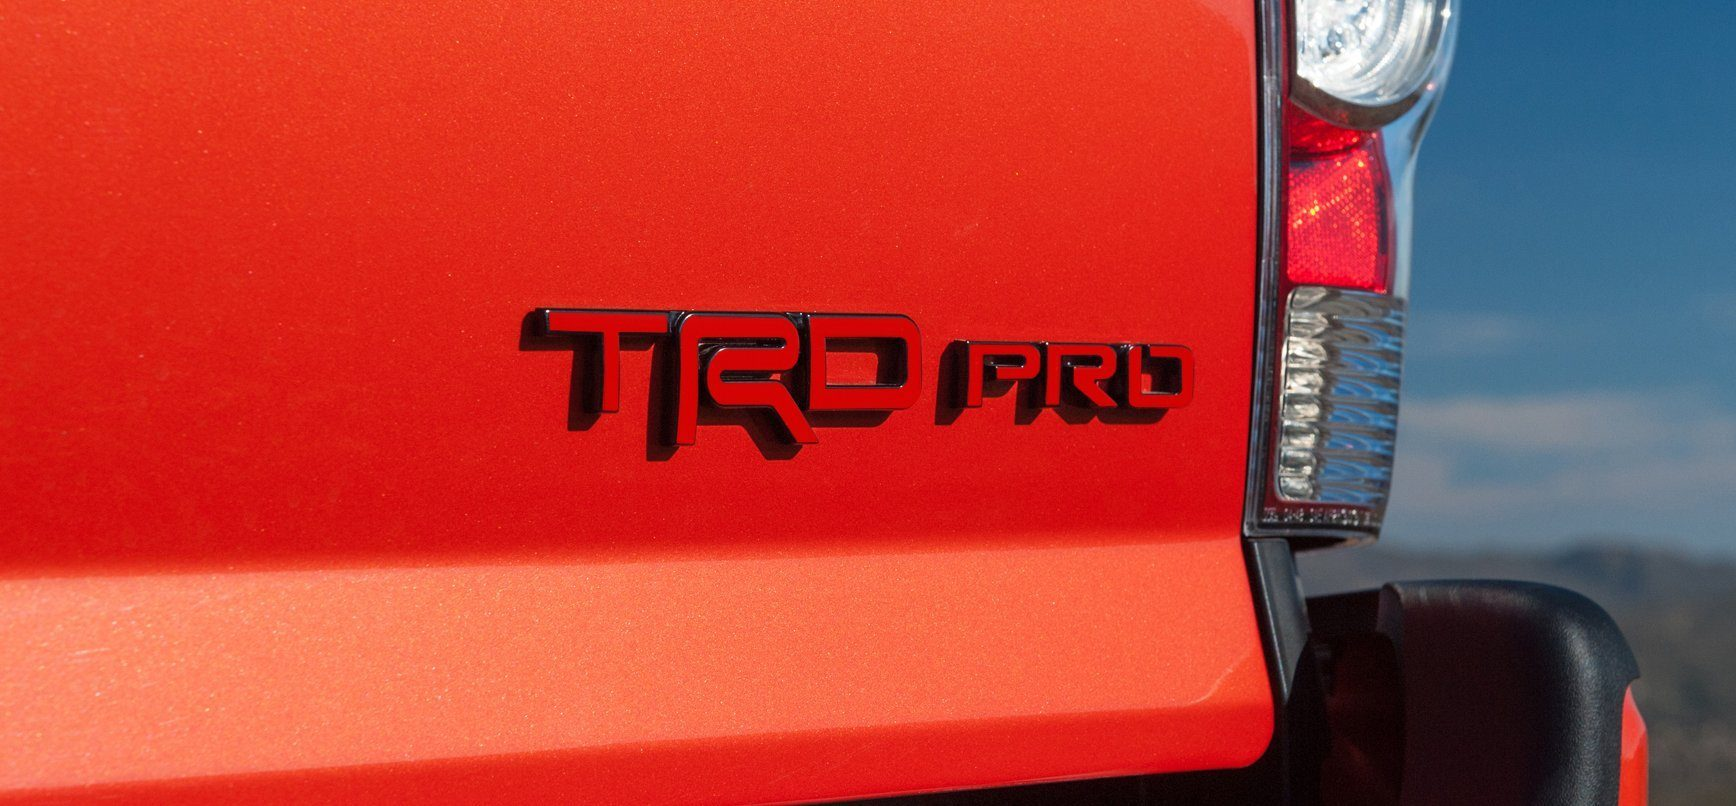 Premium Cast Vinyl Decals for 4Runner and Tacoma TRD Pro C-Pillar or Tailgate - TVD Vinyl Decals